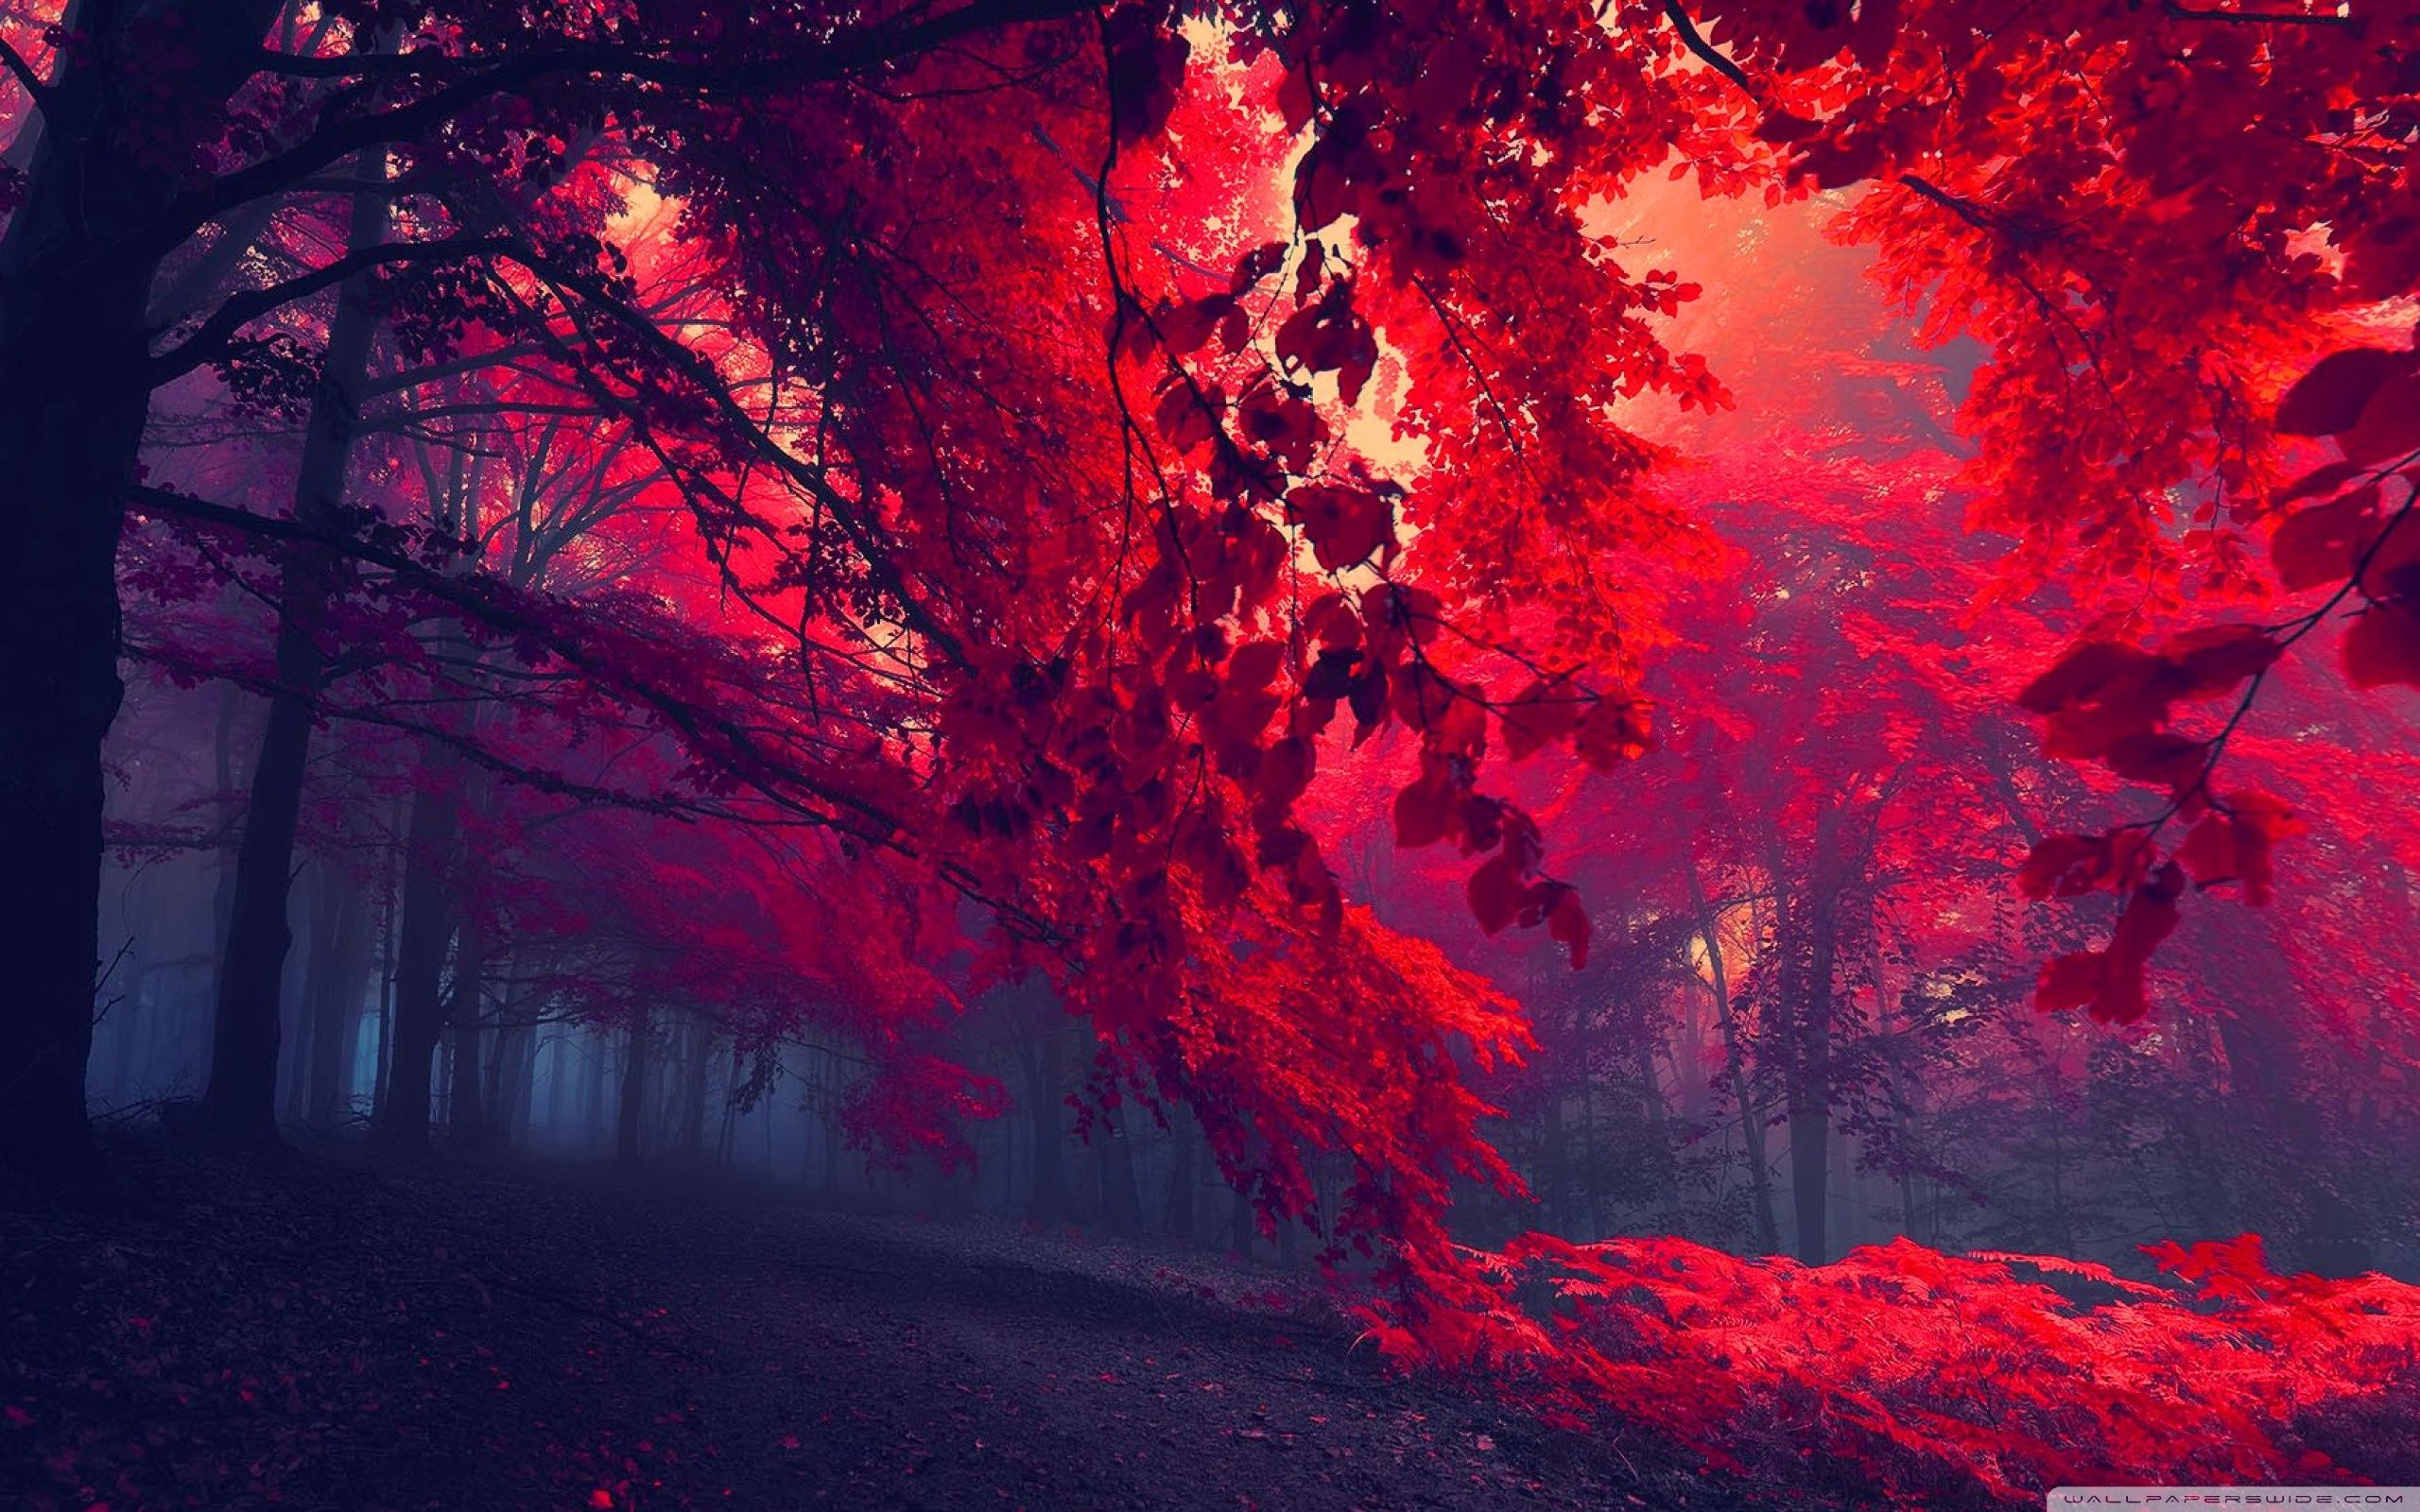 Red forest wallpapers top free red forest backgrounds - 4k forest wallpaper ...